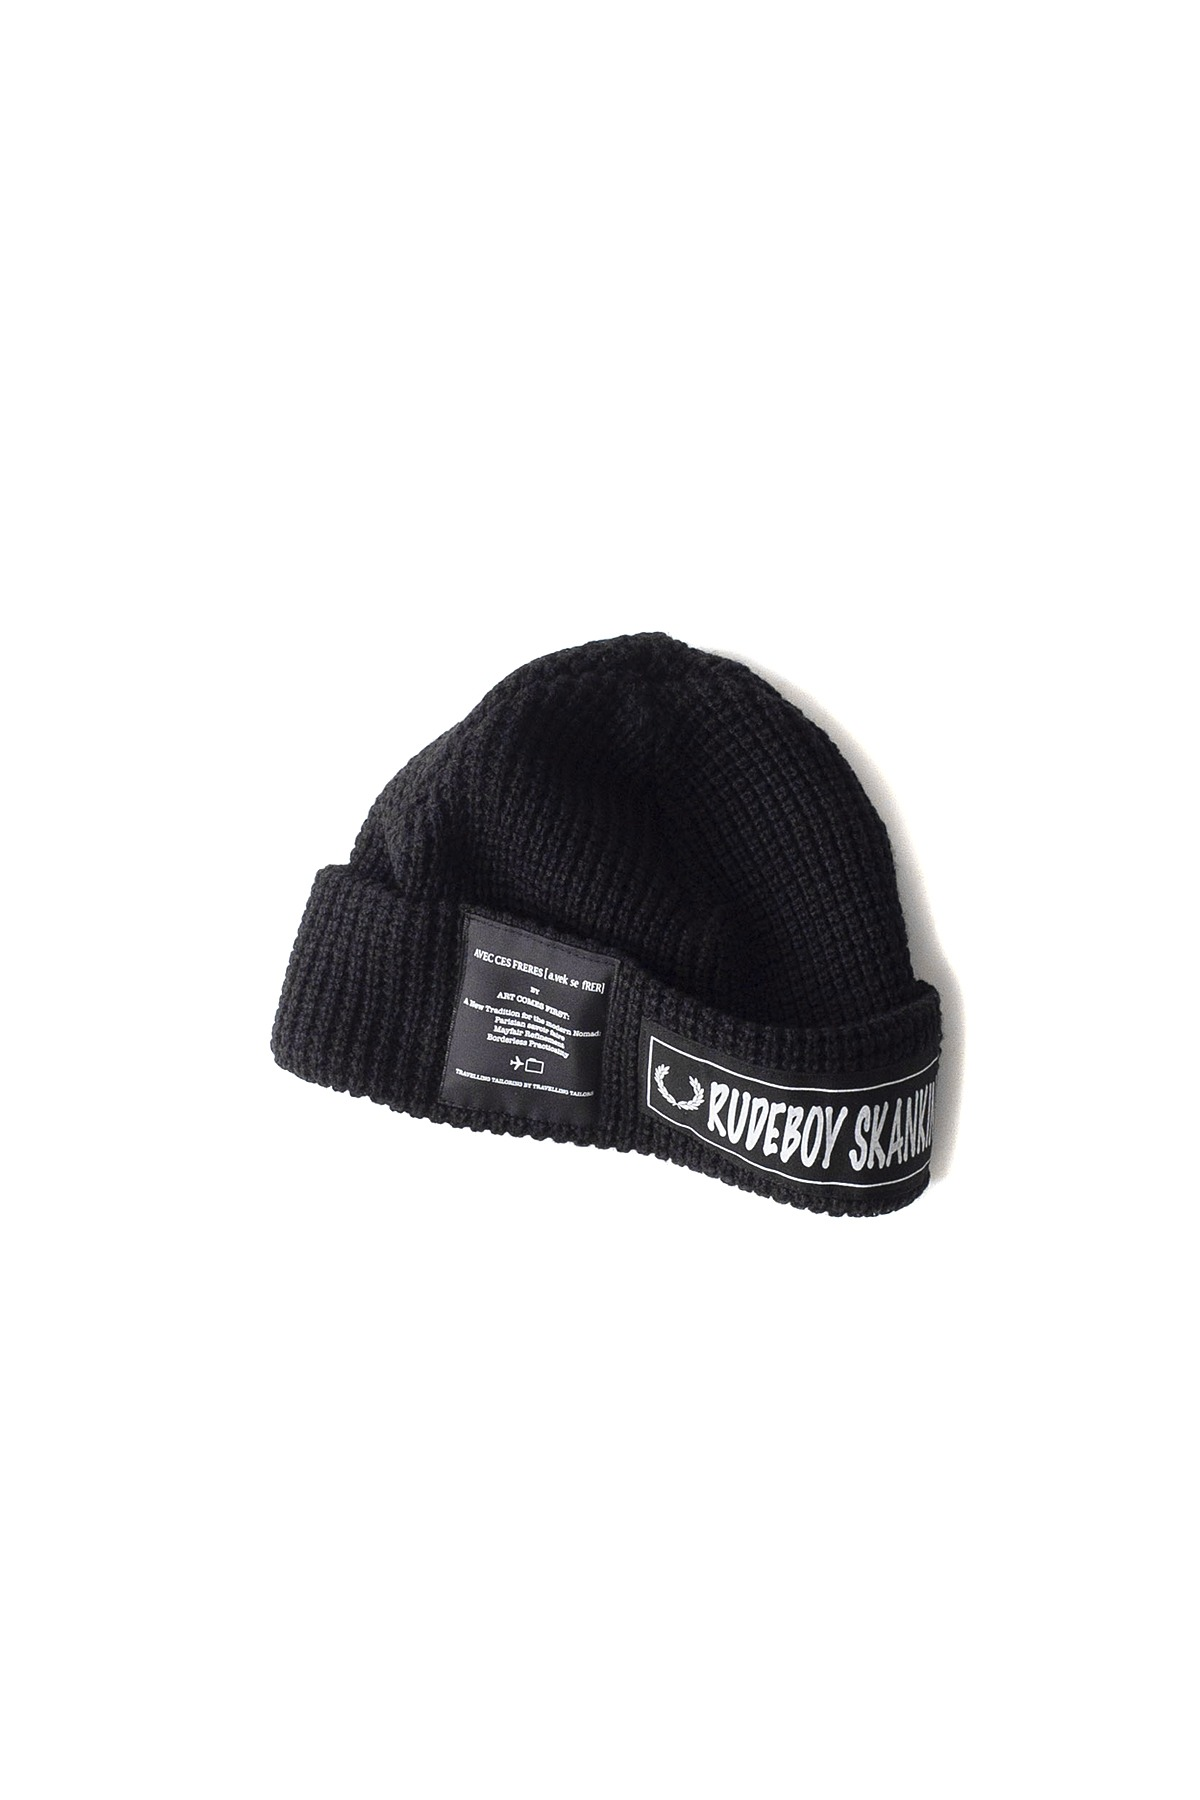 FRED PERRY x ART COMES FIRST : Fishermans Rib Beanie (Black)